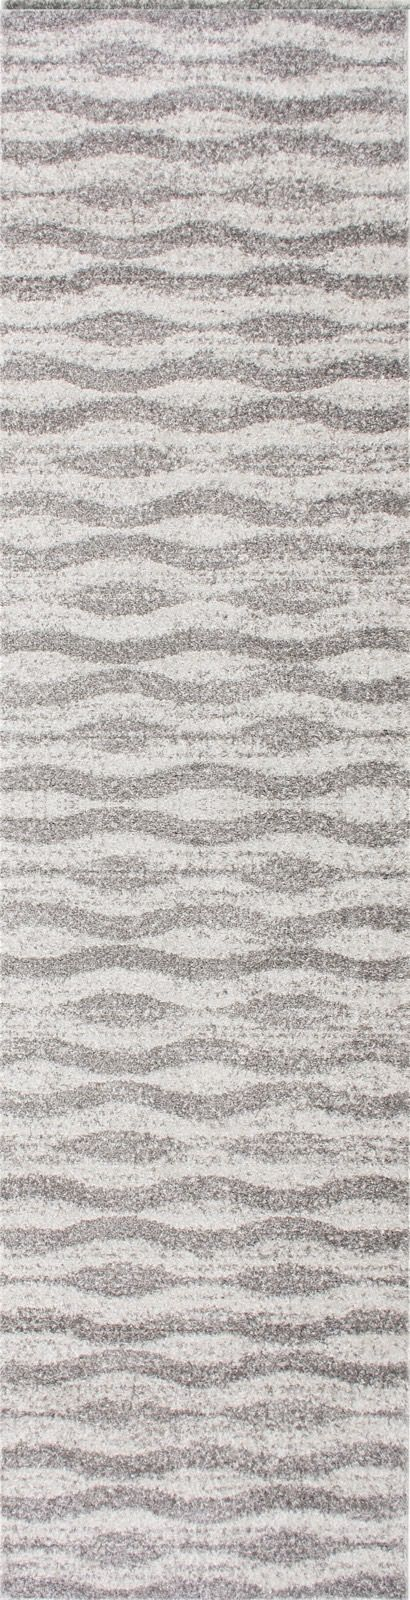 nuloom tristan contemporary area rug collection